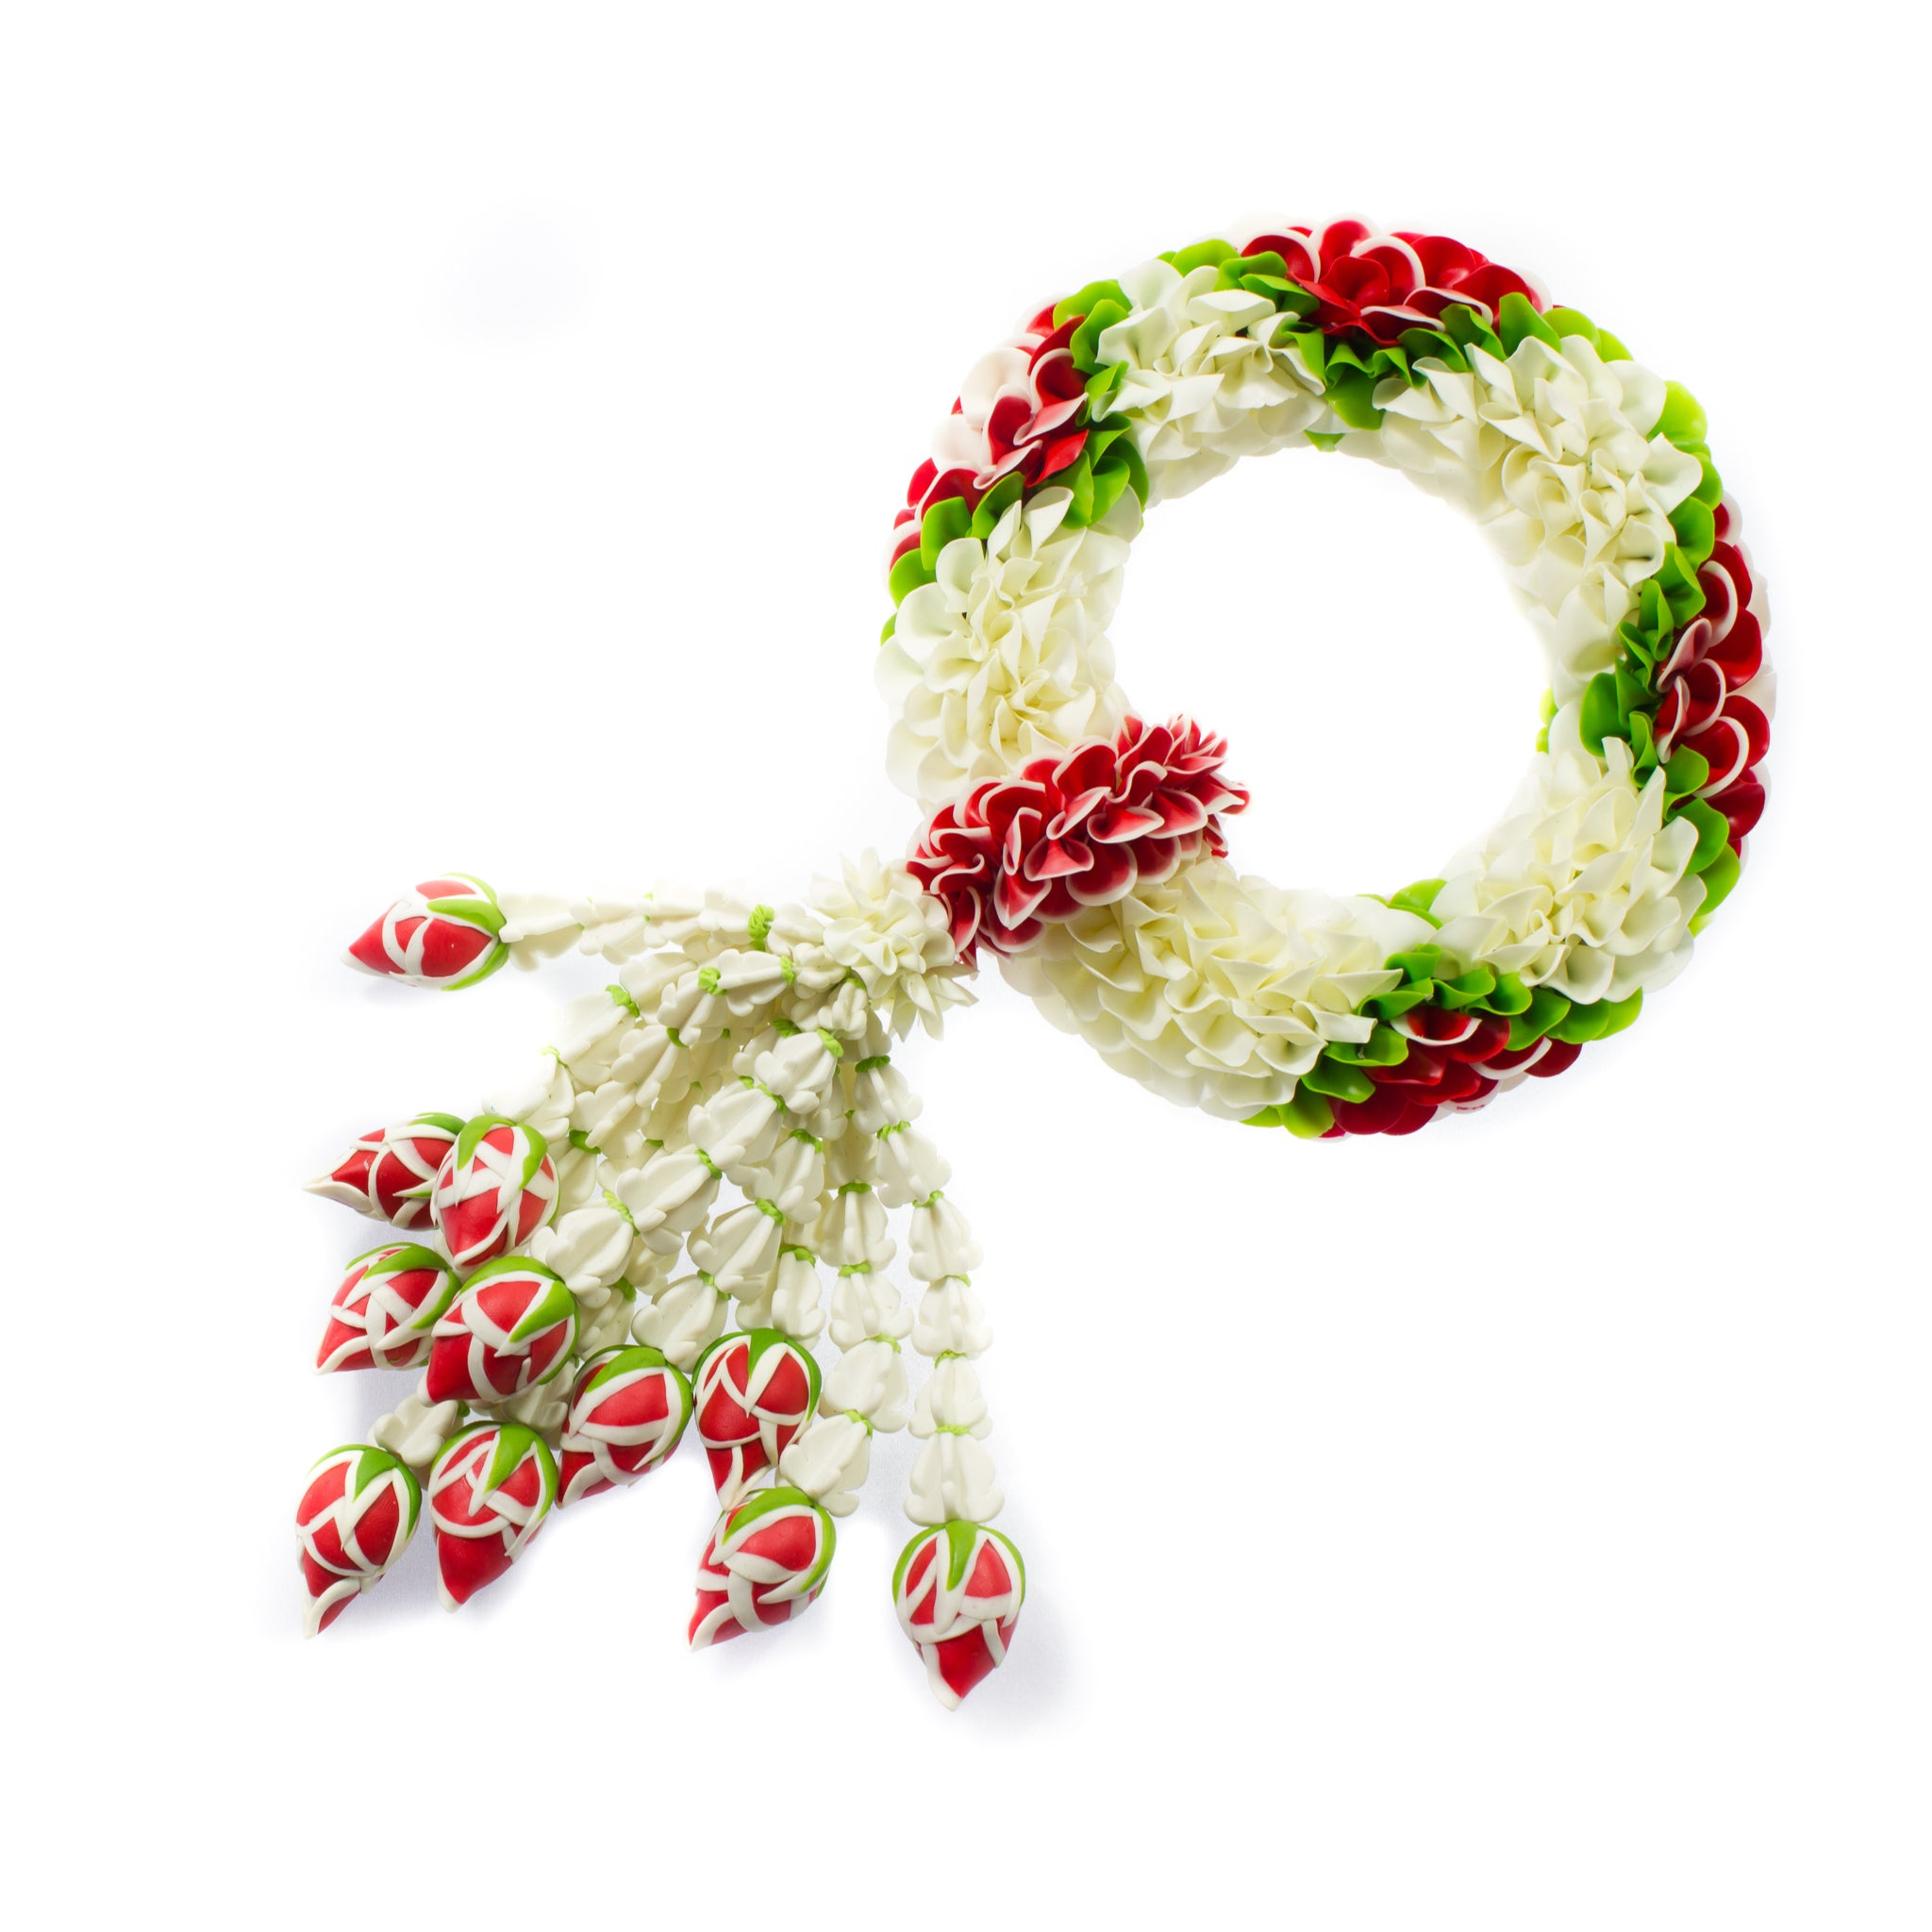 Fresh Thai jasmine (jasmin) garland imported weekly from Thailand